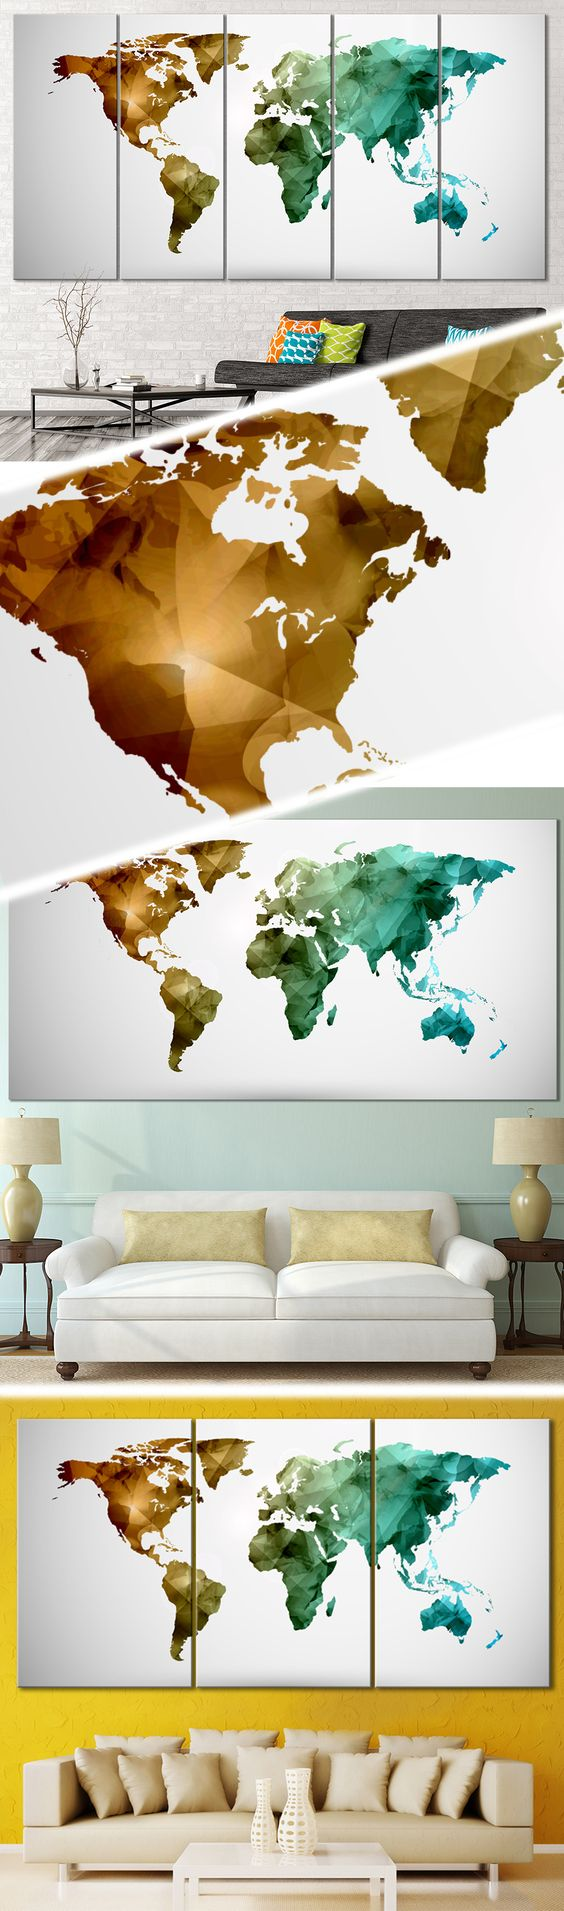 Low poly world map 111 canvas print low poly office walls and creative world map canvas prints wall art for large home or office wall decoration sale gumiabroncs Gallery